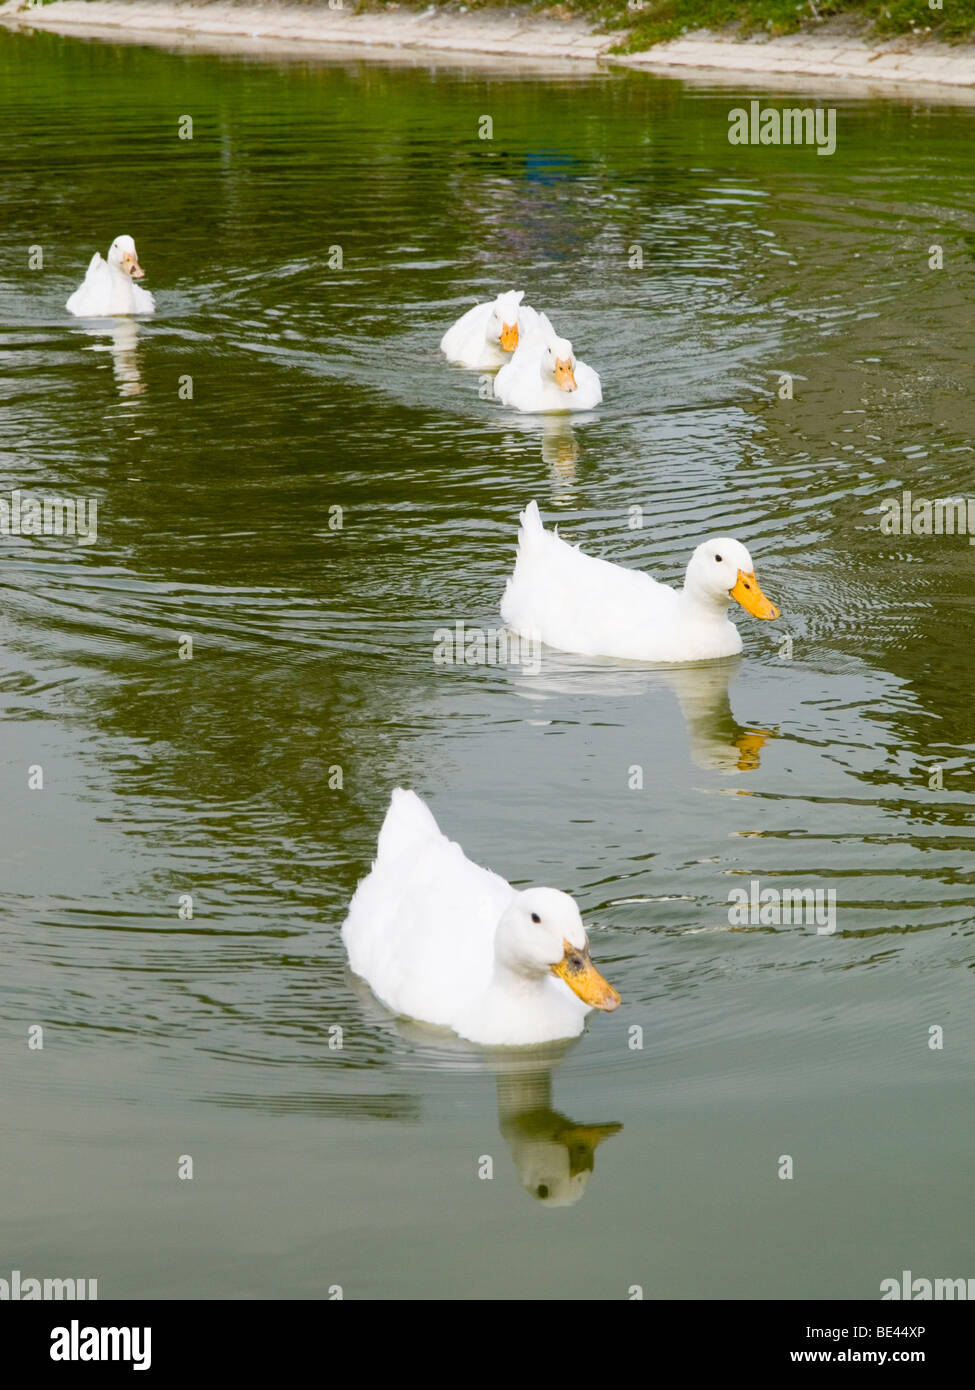 White ducks on the pond in Hartington Village, the Peak District Derbyshire England UK - Stock Image